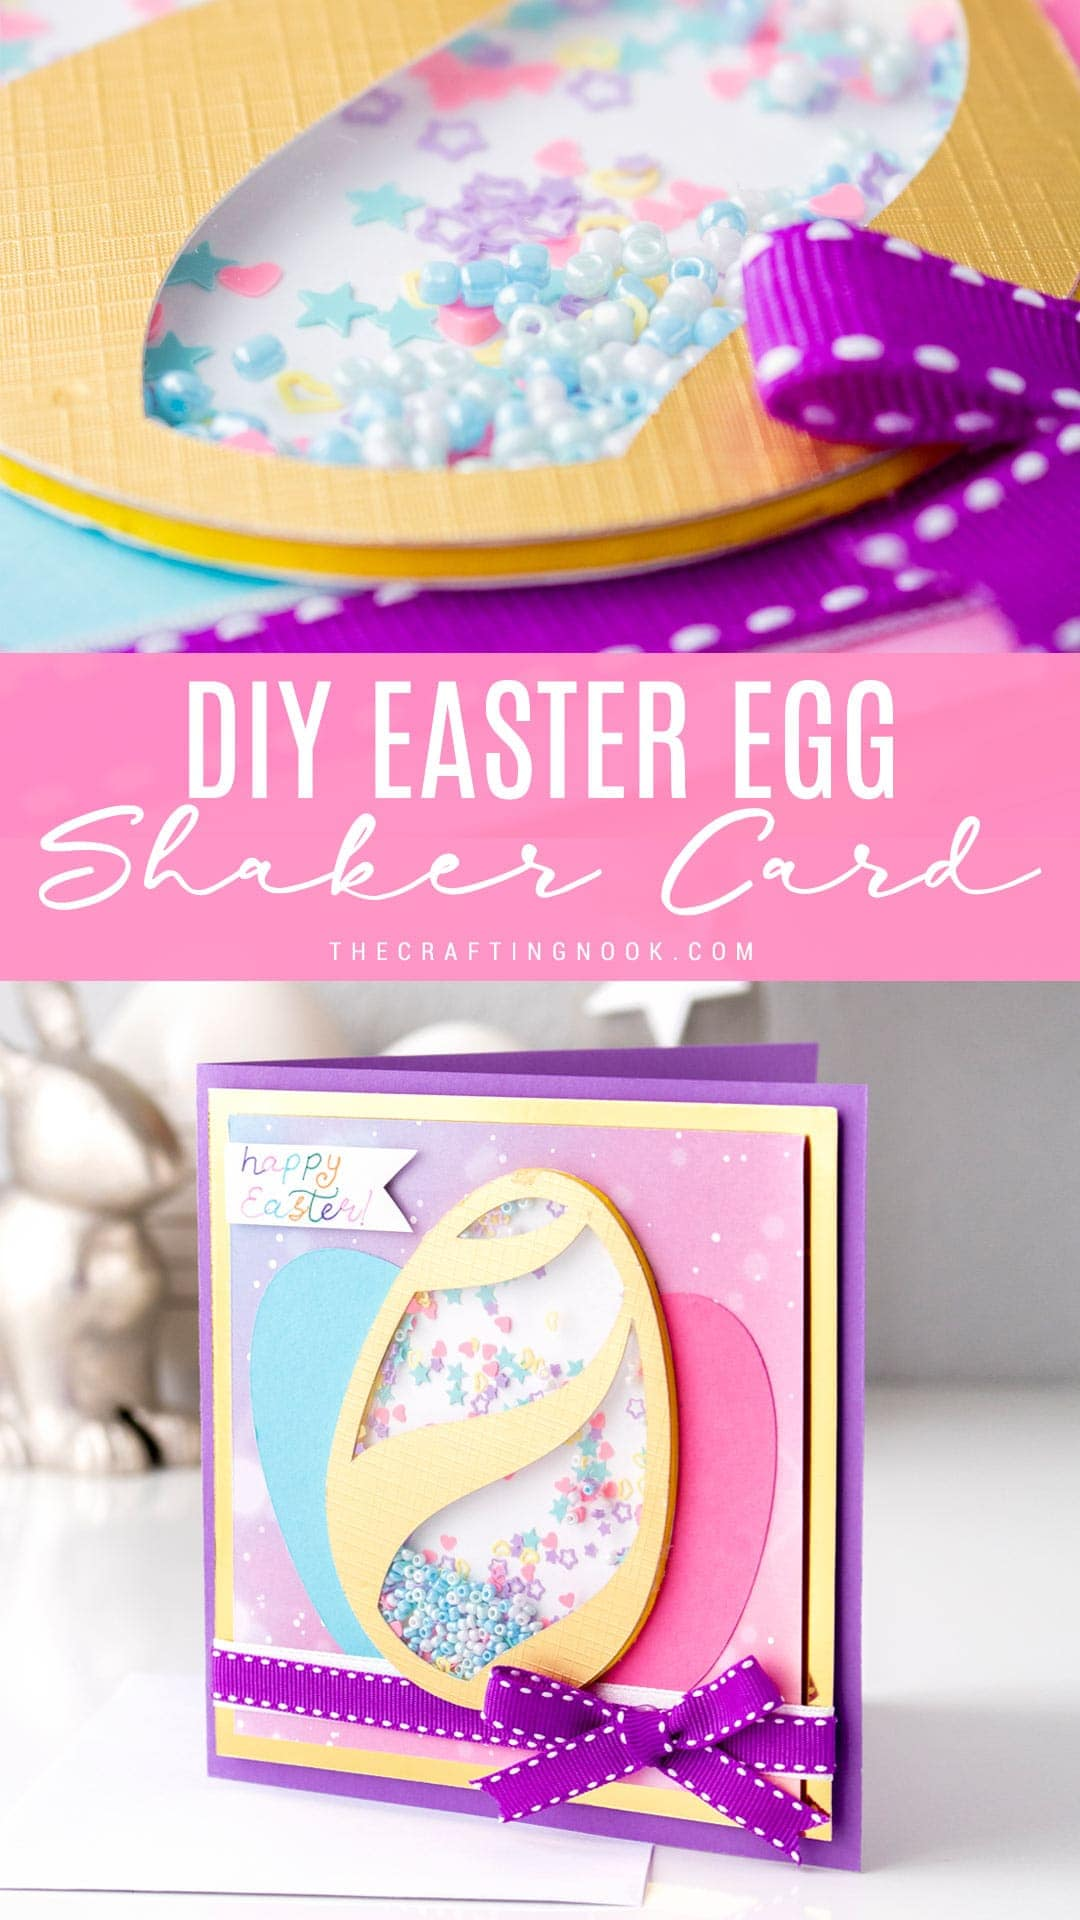 Learn how to make an Easter card with a shaker!